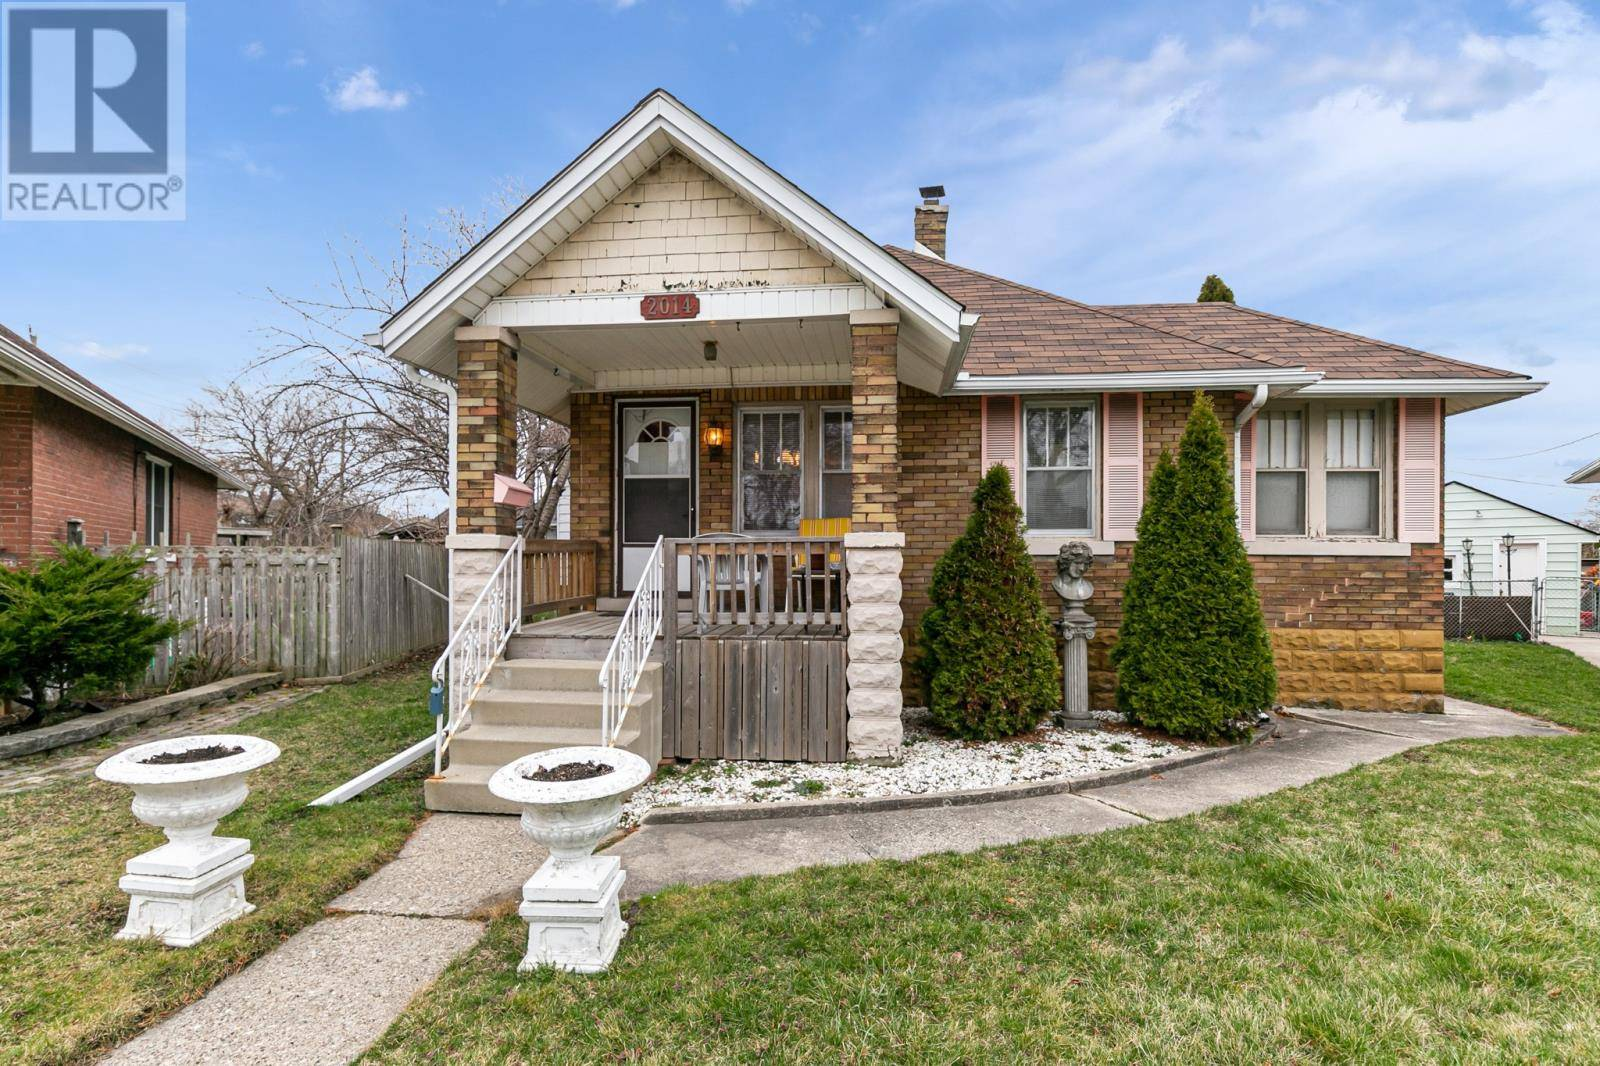 House for sale at 2014 Argyle Ct Windsor Ontario - MLS: 20003857